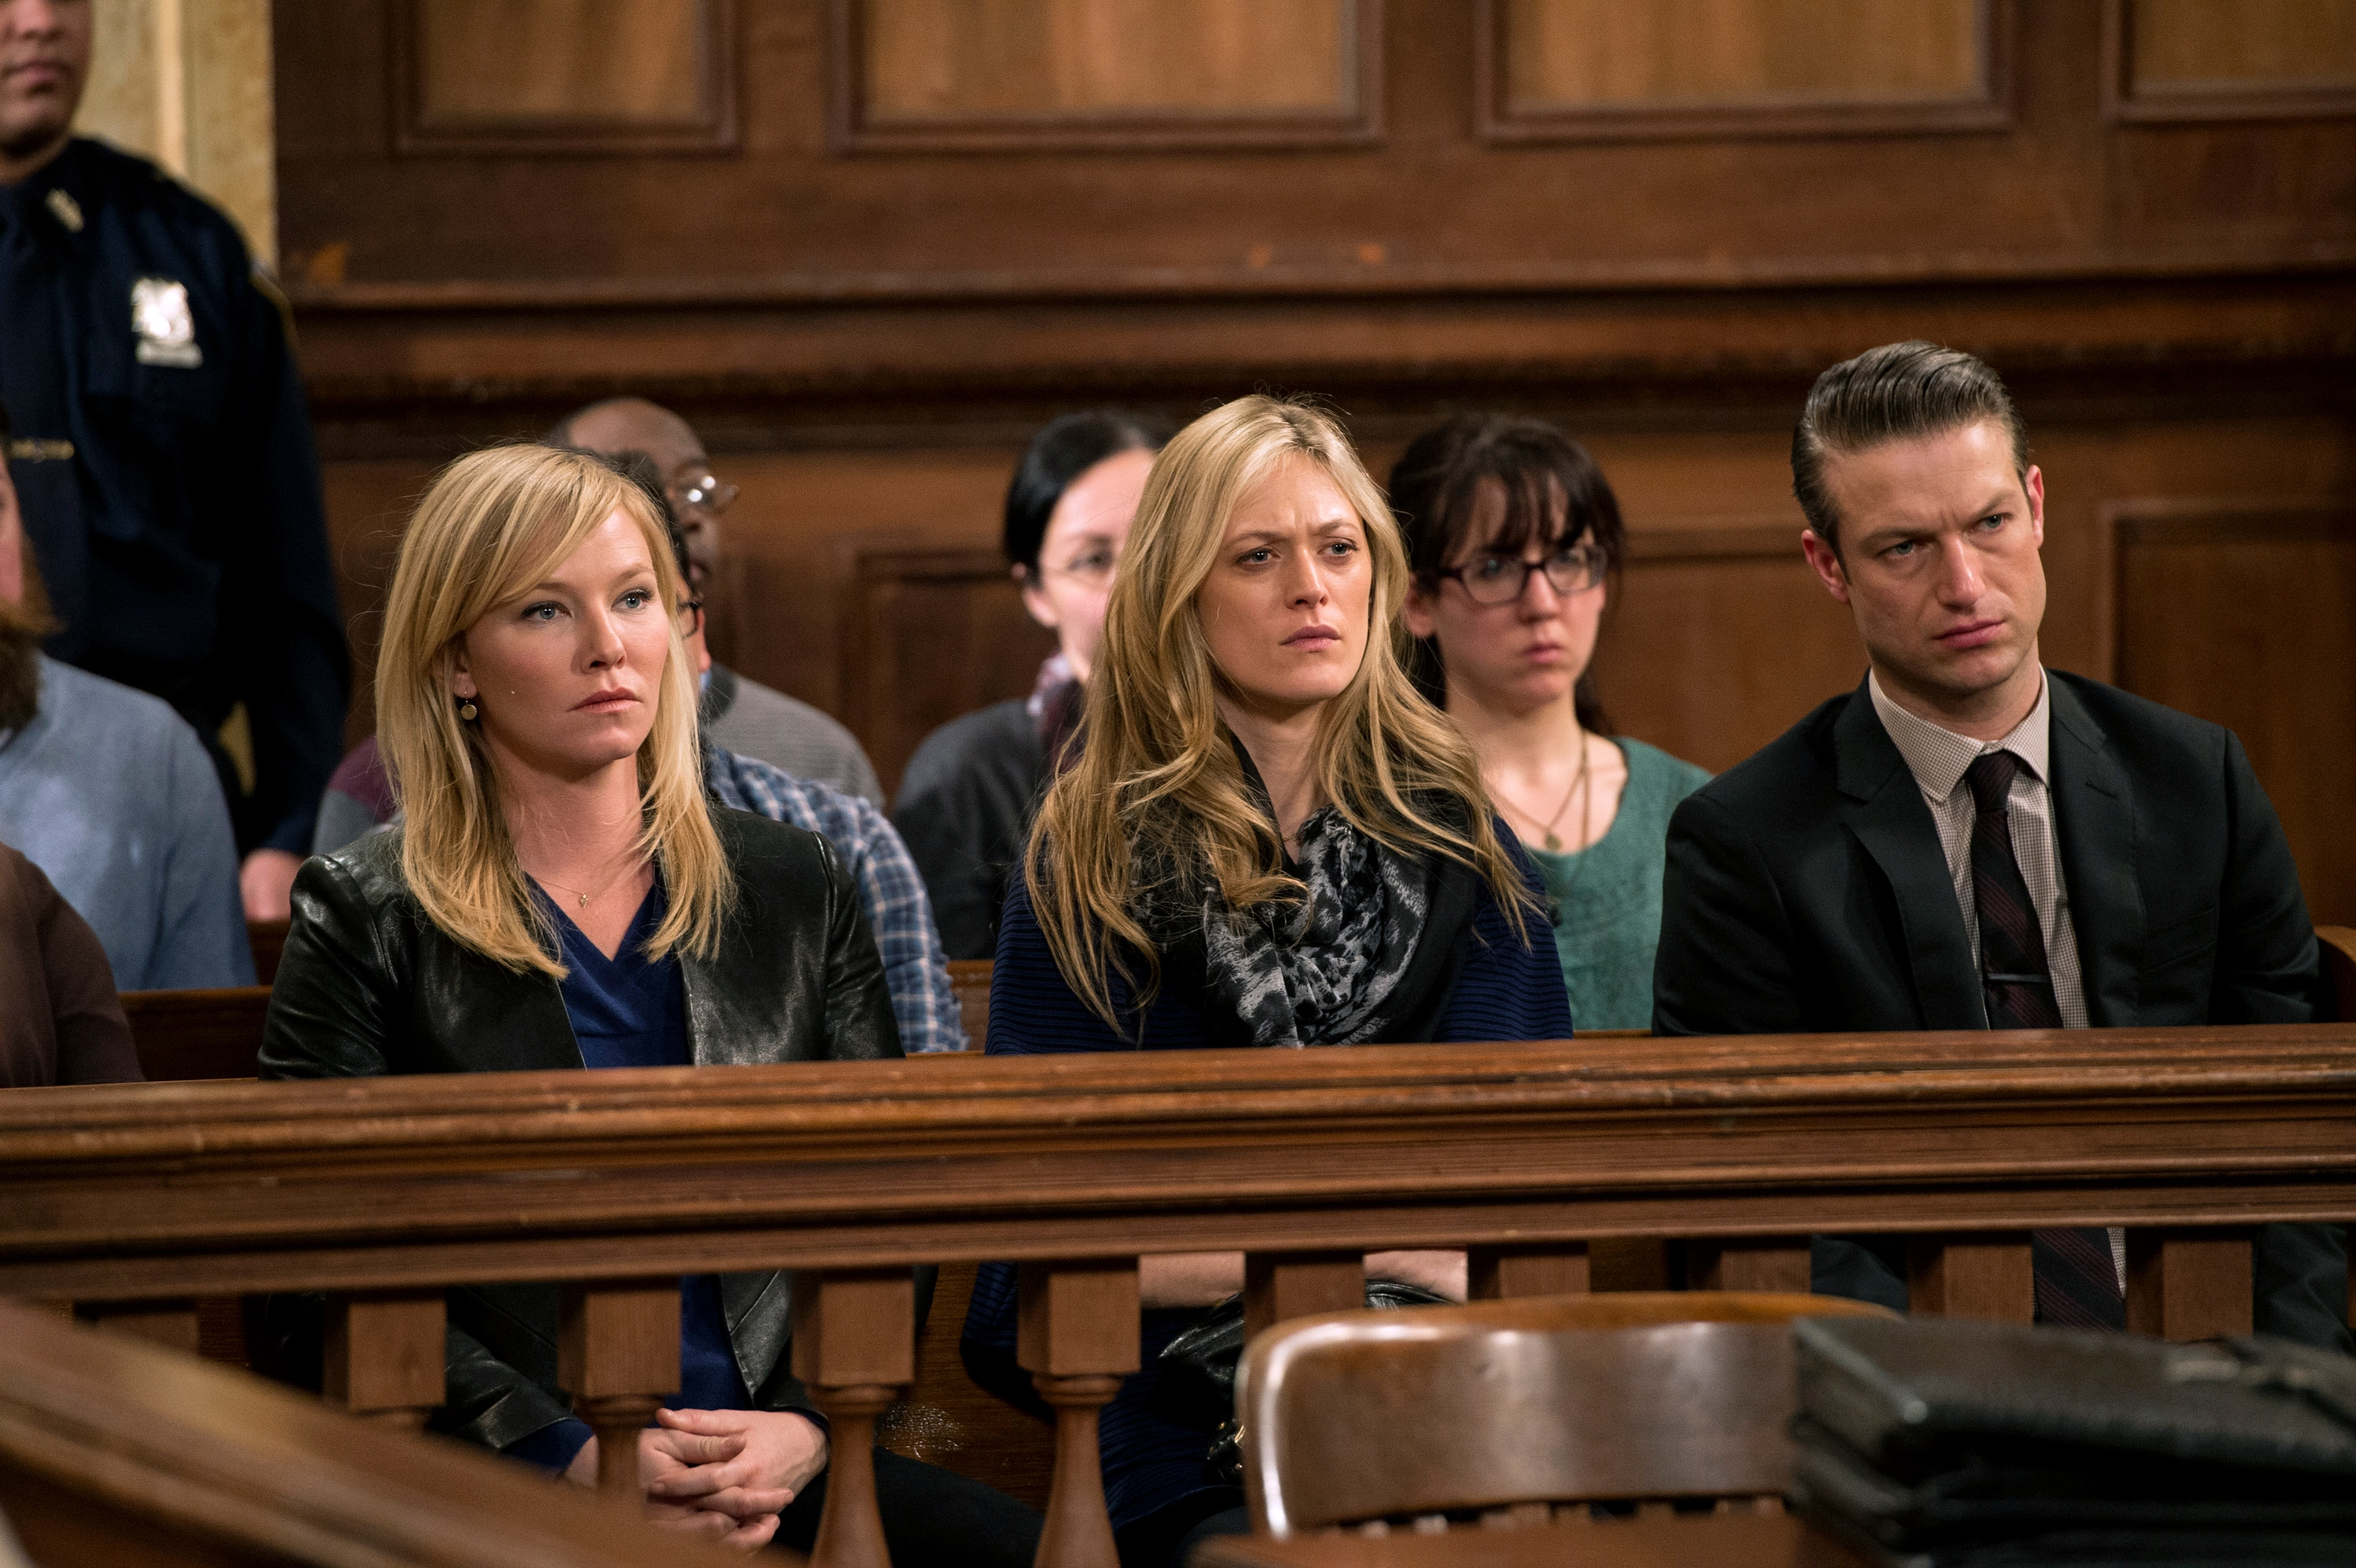 List of Law & Order: Special Victims Unit episodes - …